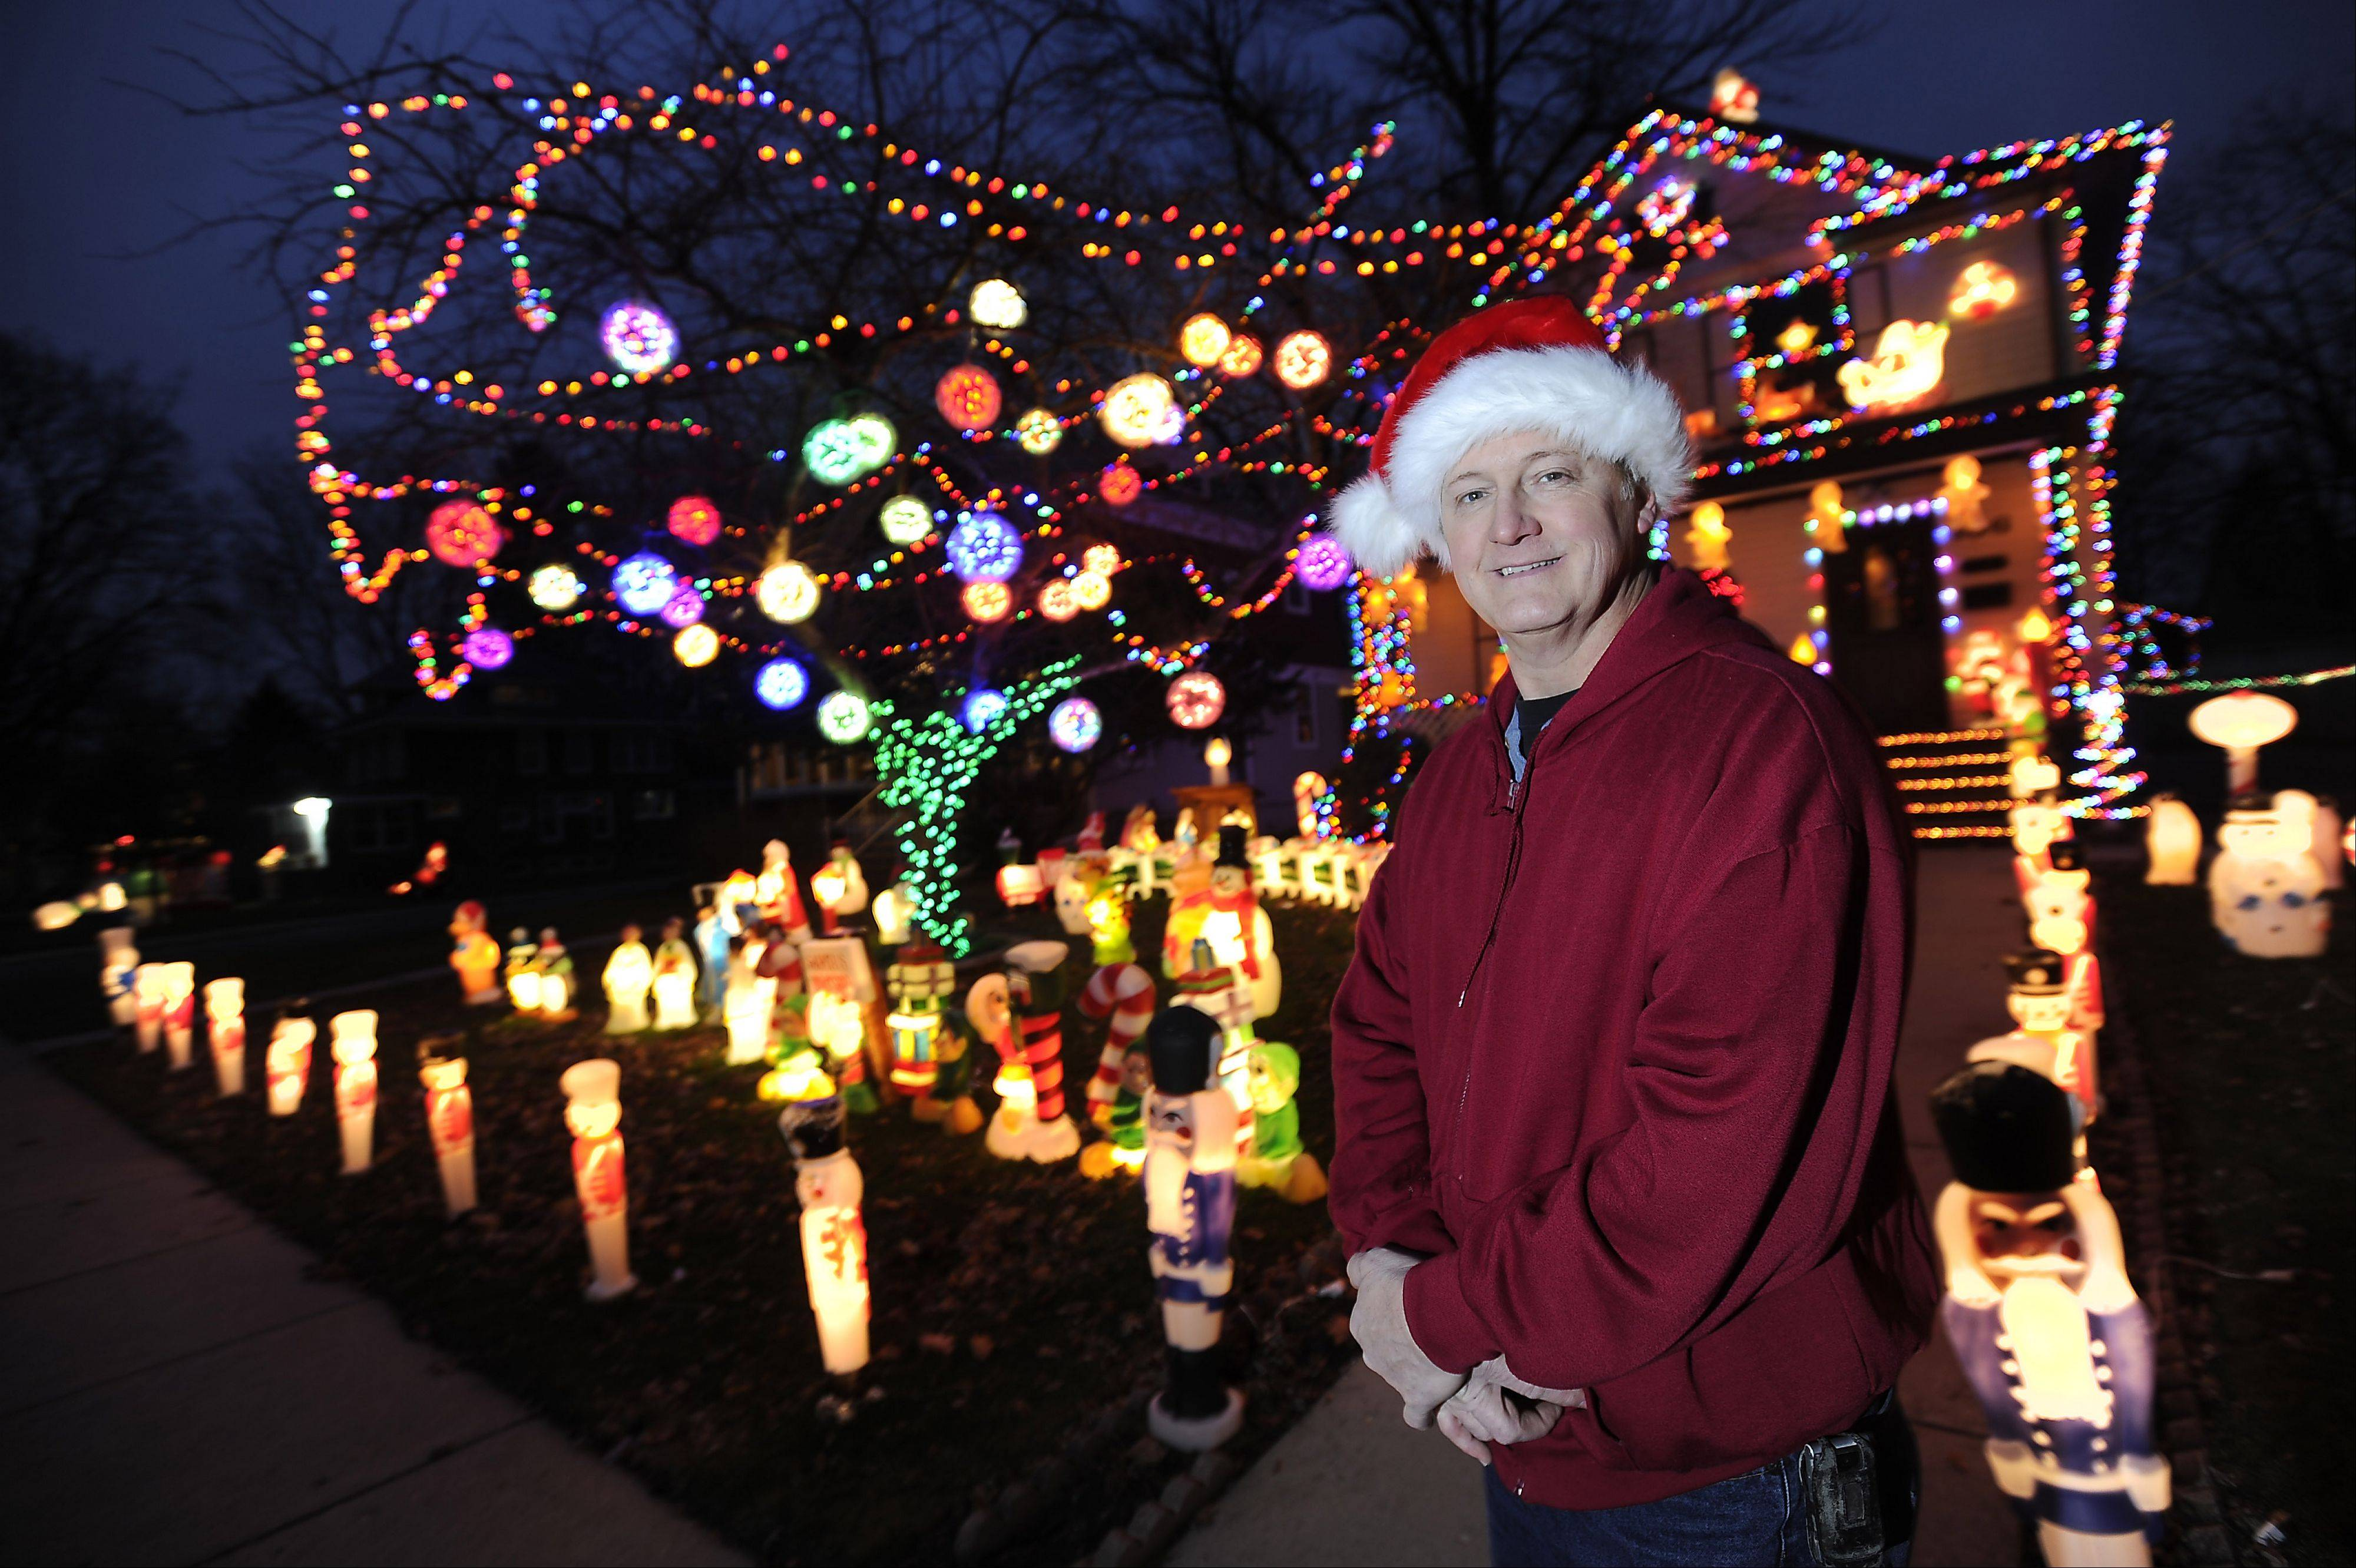 Michael Arnold won the 2011 Daily Herald holiday lights contest for his display at 106 Monroe St. in Elgin.